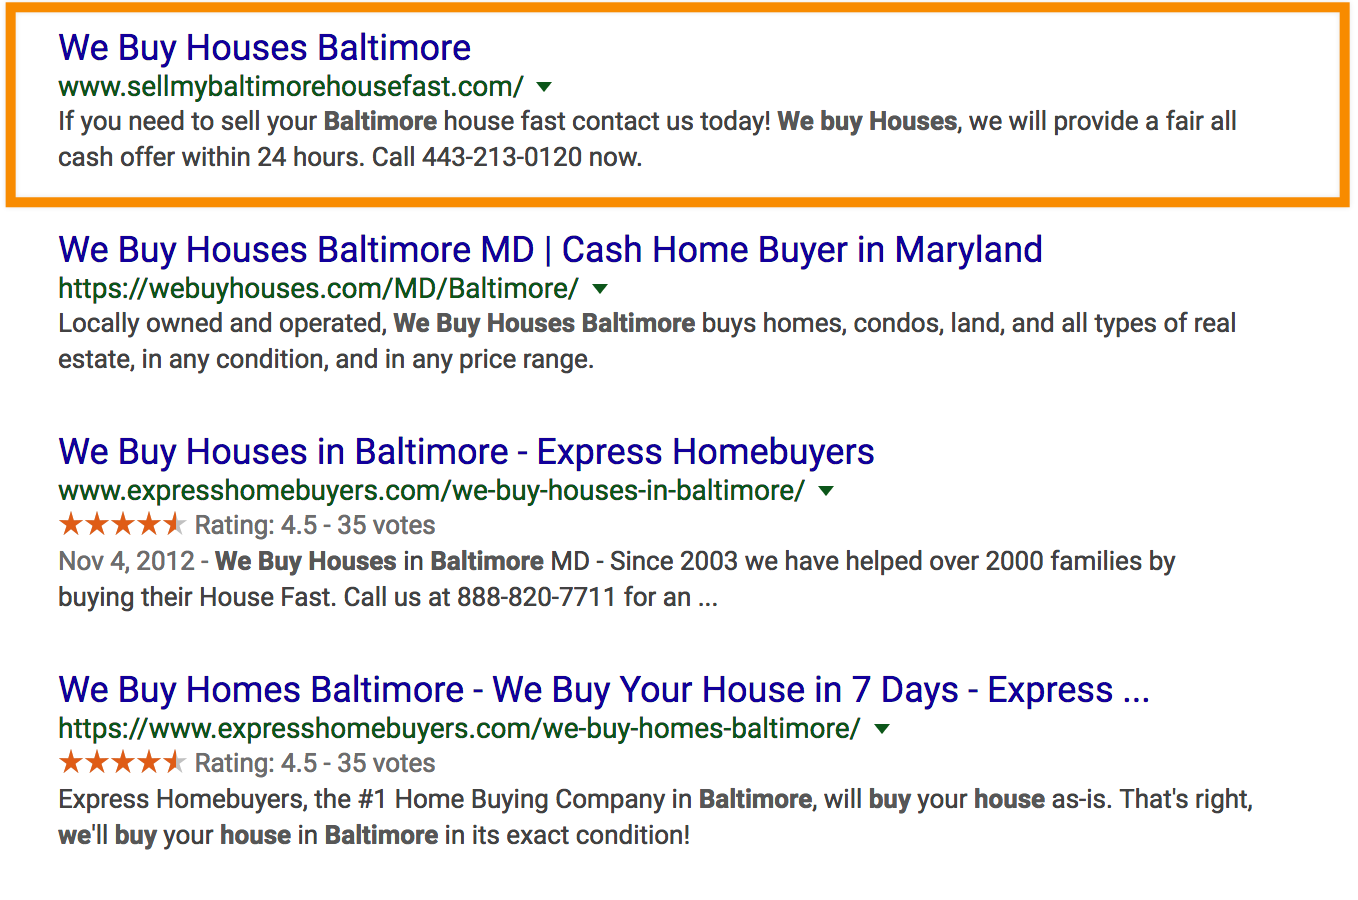 we buy houses baltimore seo results